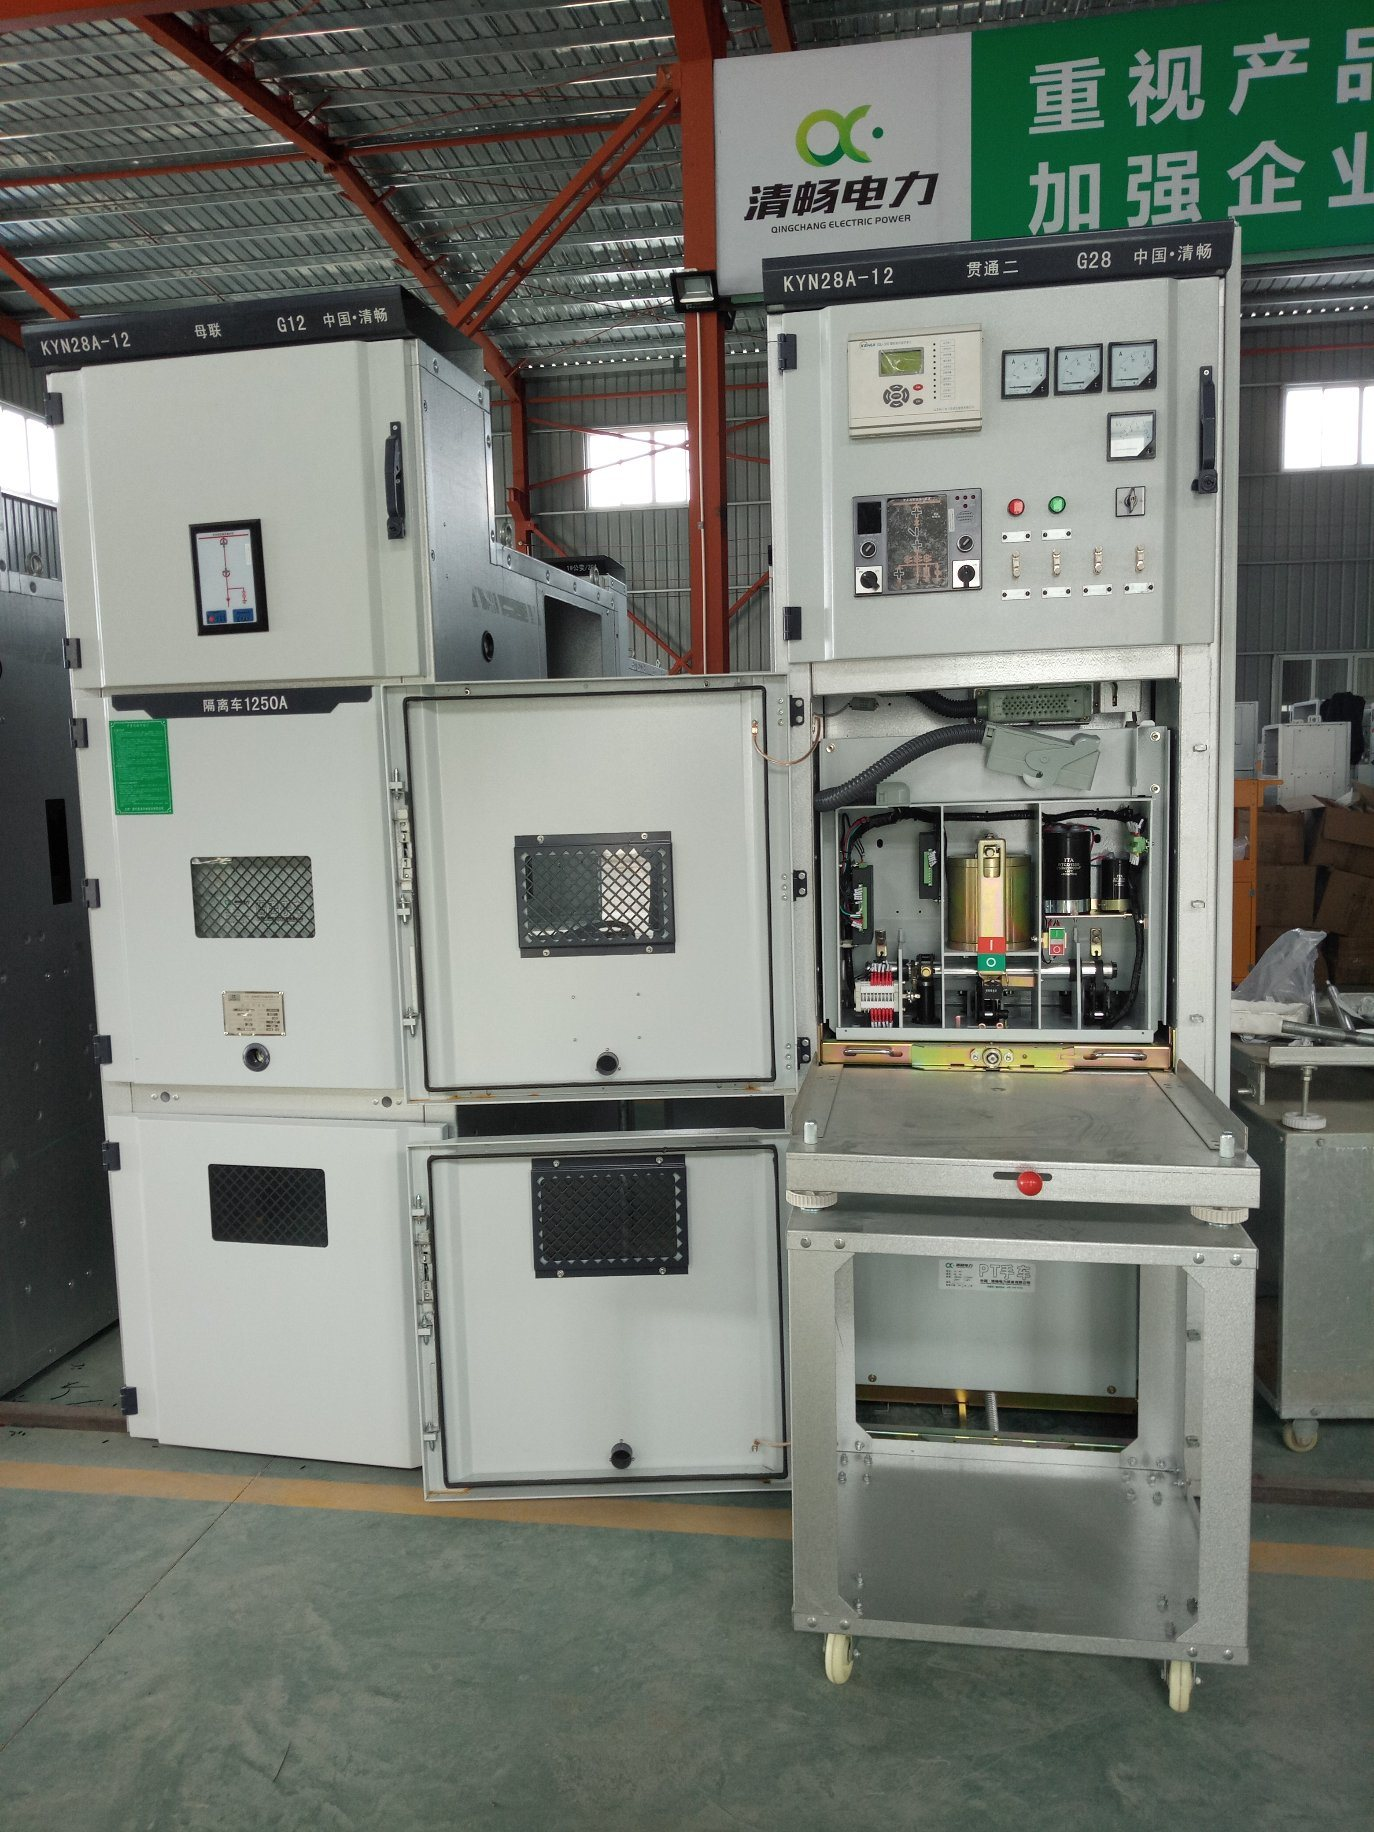 China 6kv/10kv/11kv Withdrawable Vcb Switchgear/Switchboard - China ...